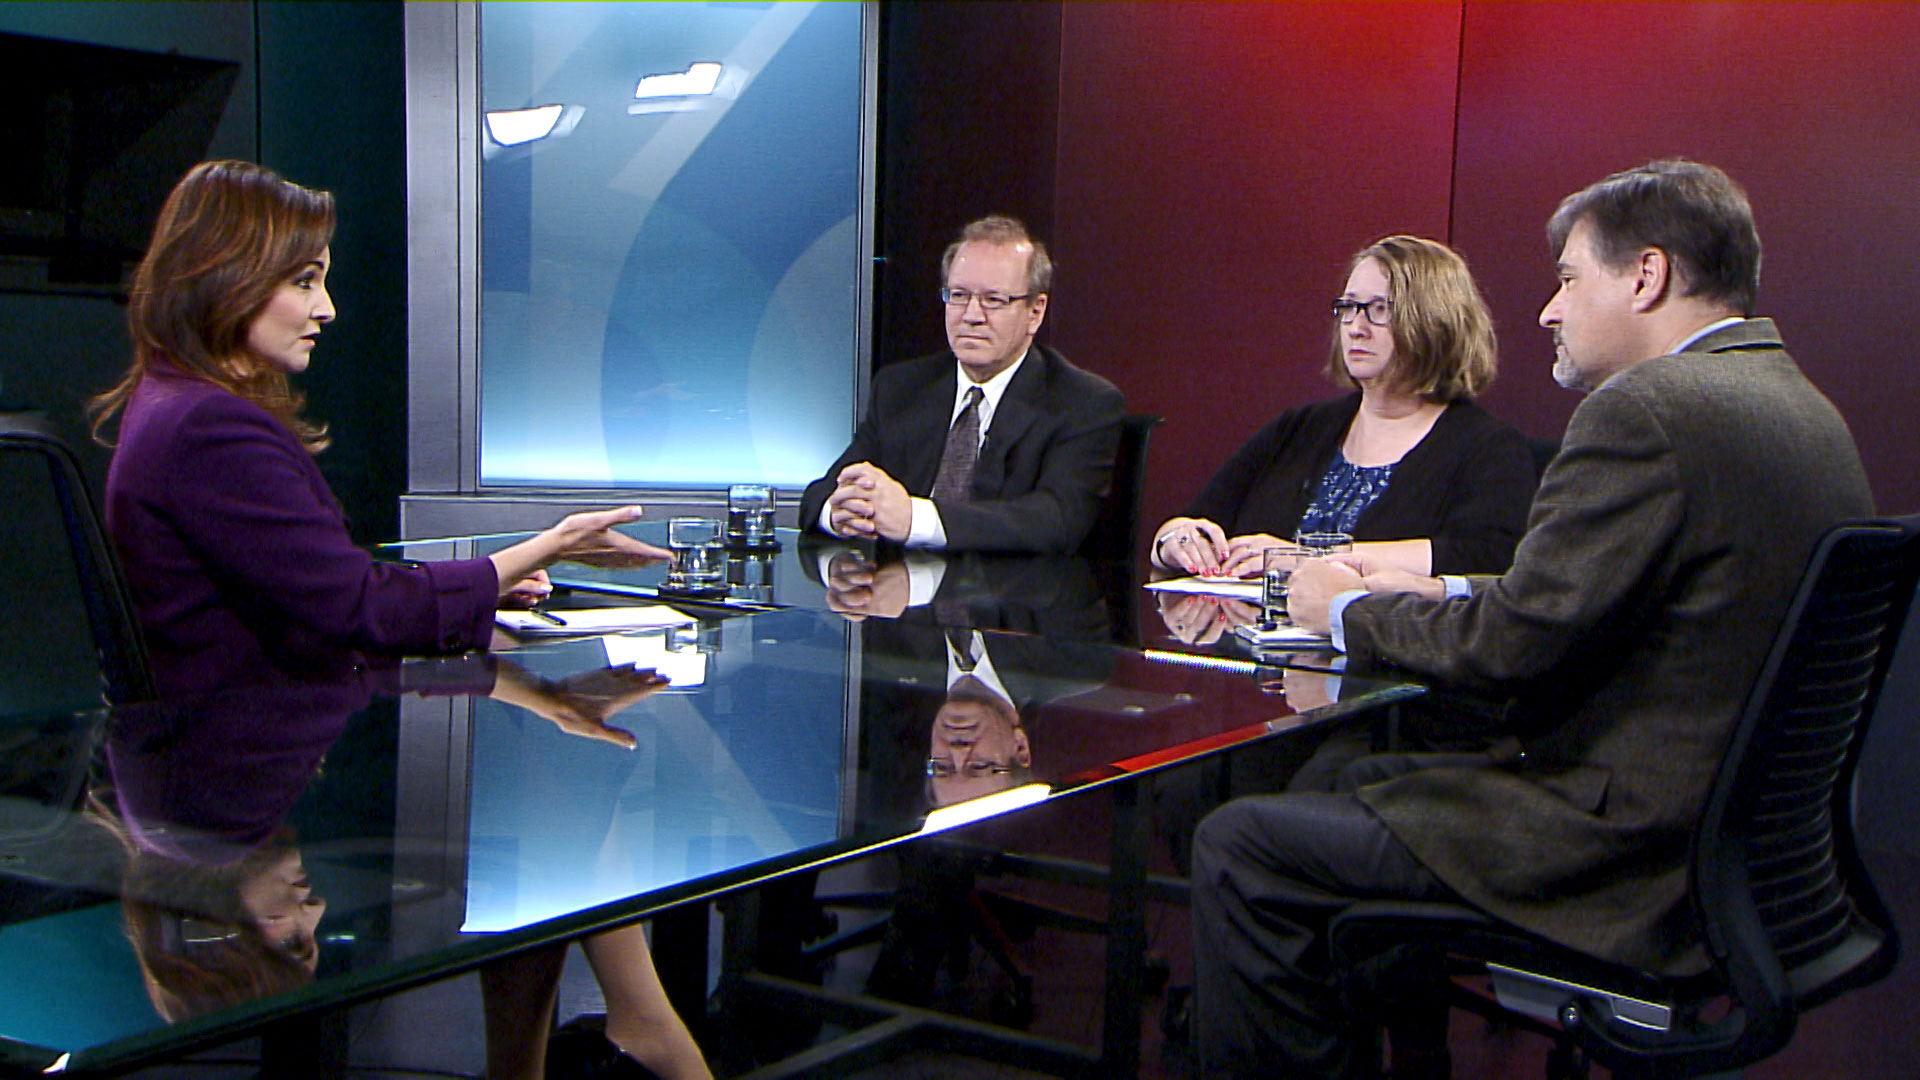 Dan Shearer (left), Sarah Garrecht Gassen and Dylan Smith participate in a roundtable discussion with Arizona 360 host Lorraine Rivera on July 25, 2019.